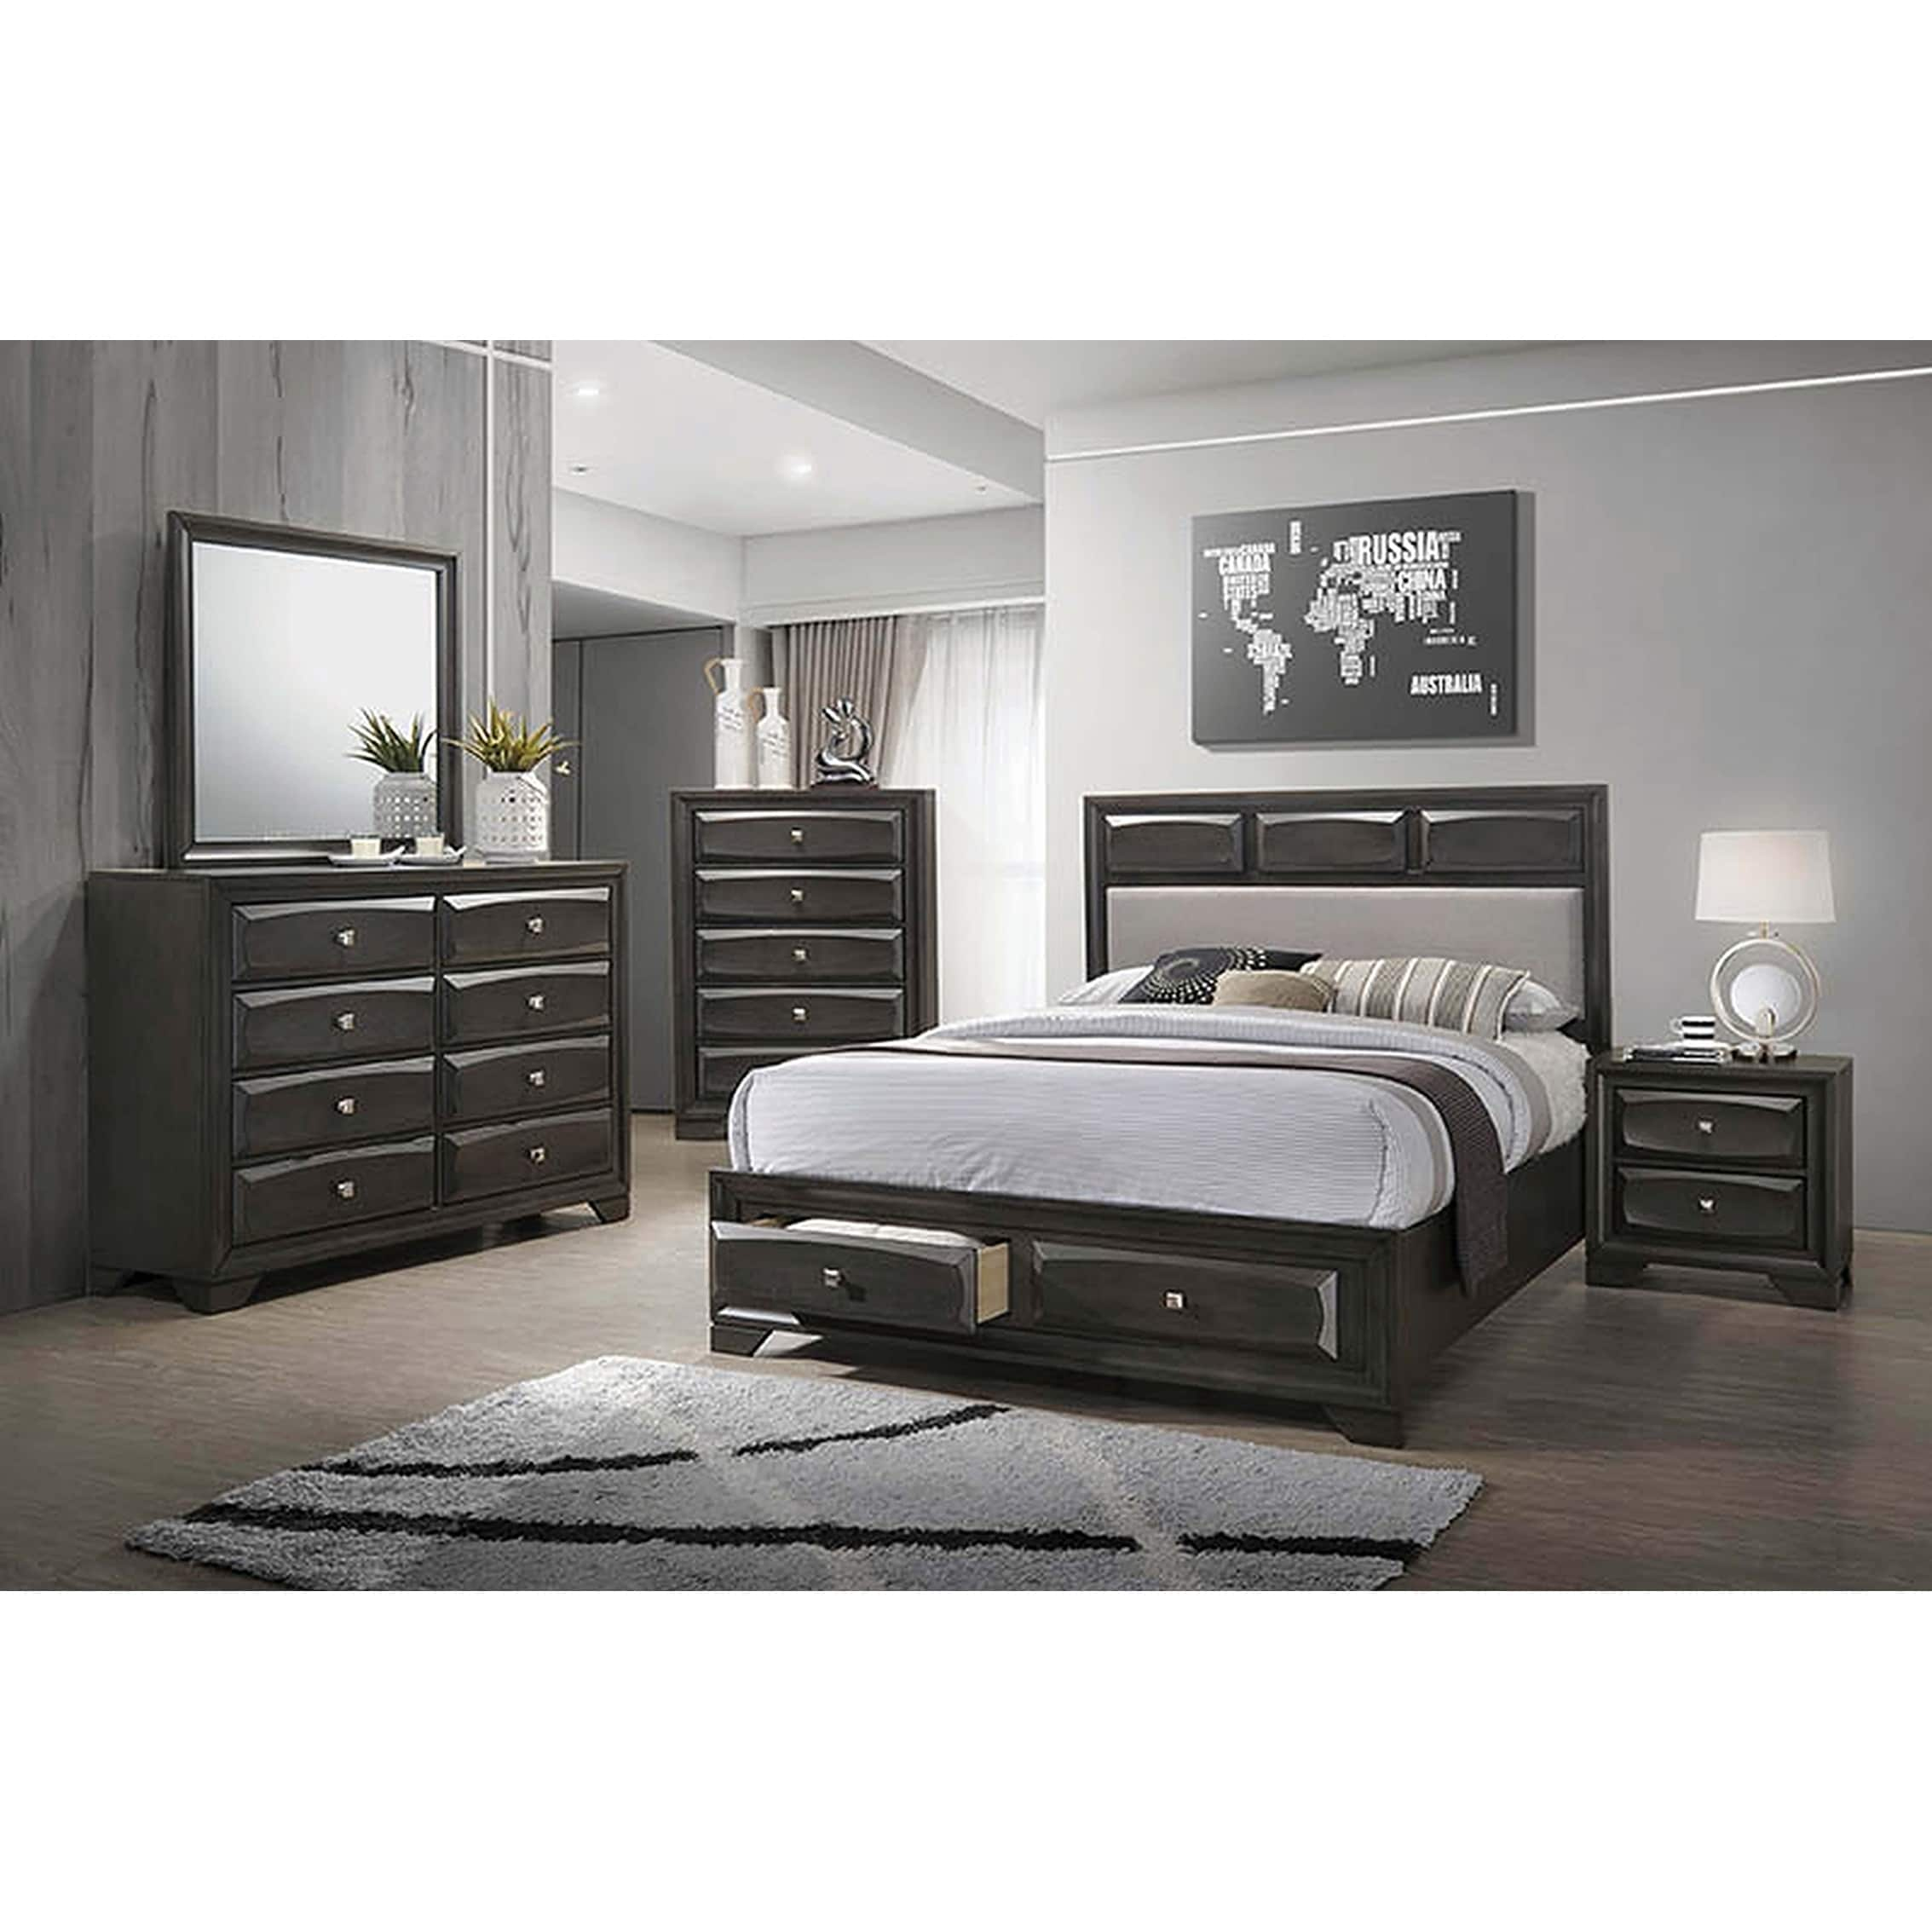 Storage Beds Australia Erroll Transitional Brown Graphite Storage Bed